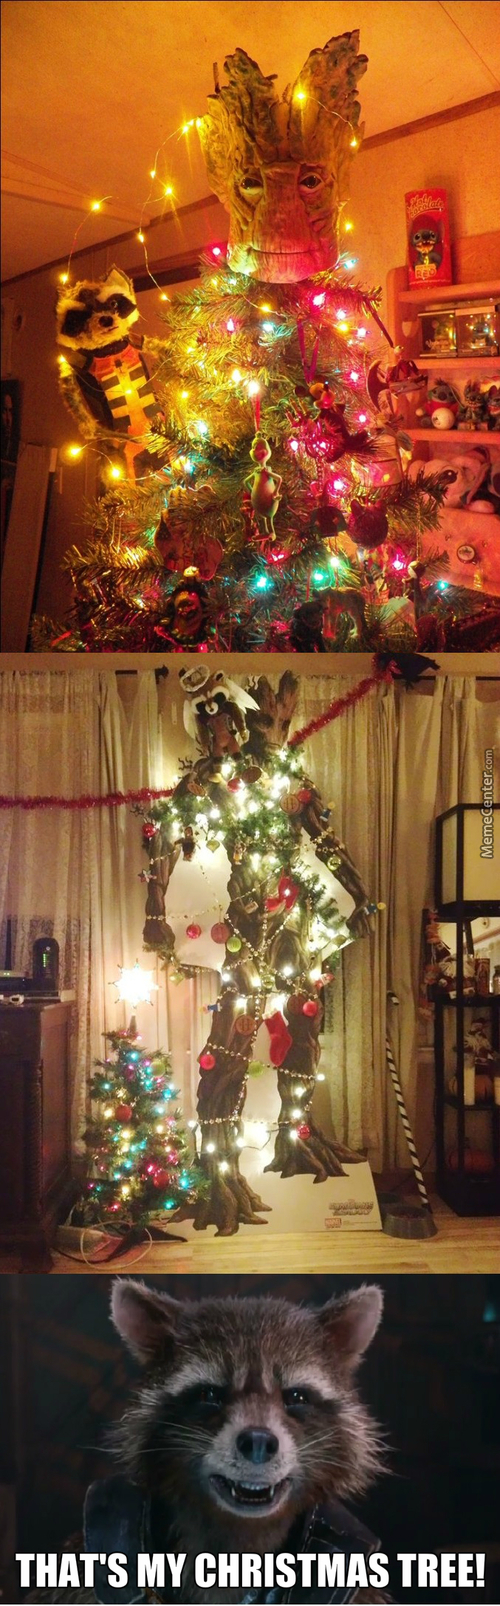 I'm Not Gonna Lie, A Groot Christmas Tree Would Be Awesome In My Living Room...